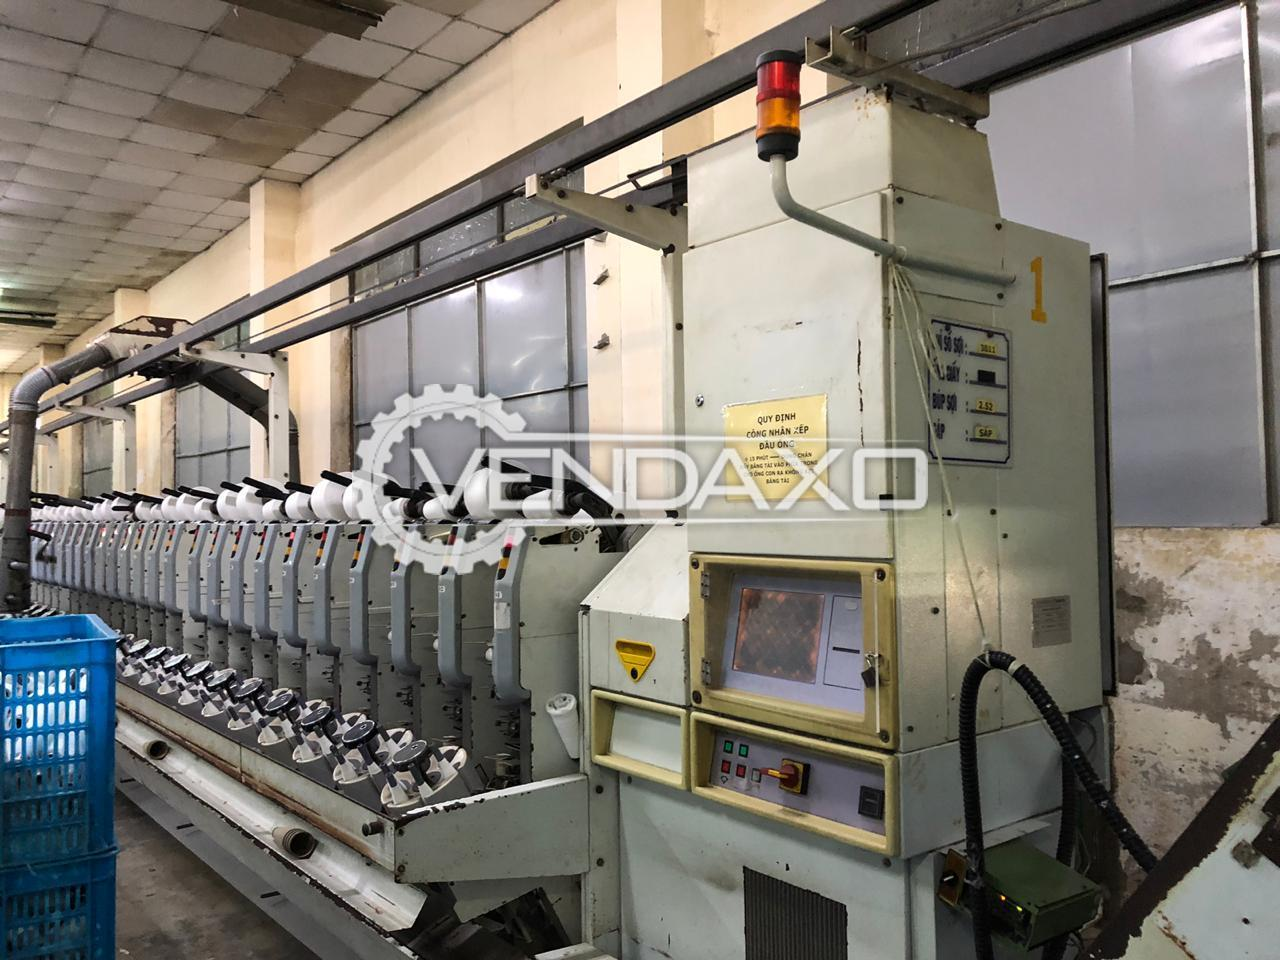 Schlafhorst 338 Autoconer Winding Machine - 60 Spindle, 2004 Model